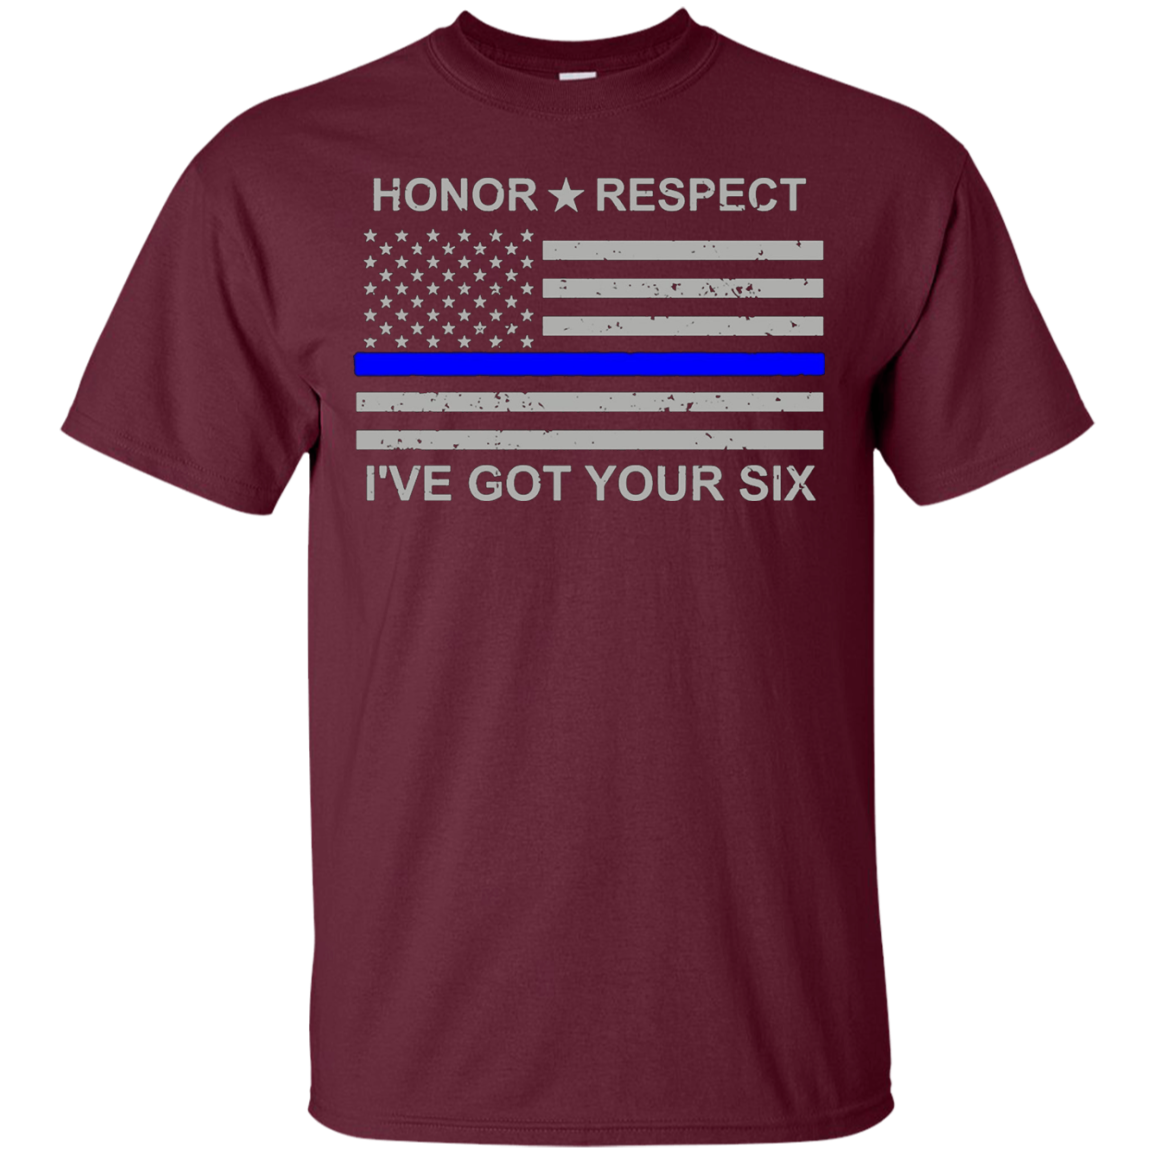 Honor Respect - I've Got Your Six - Thin Blue Line Tshirt - T-Shirt